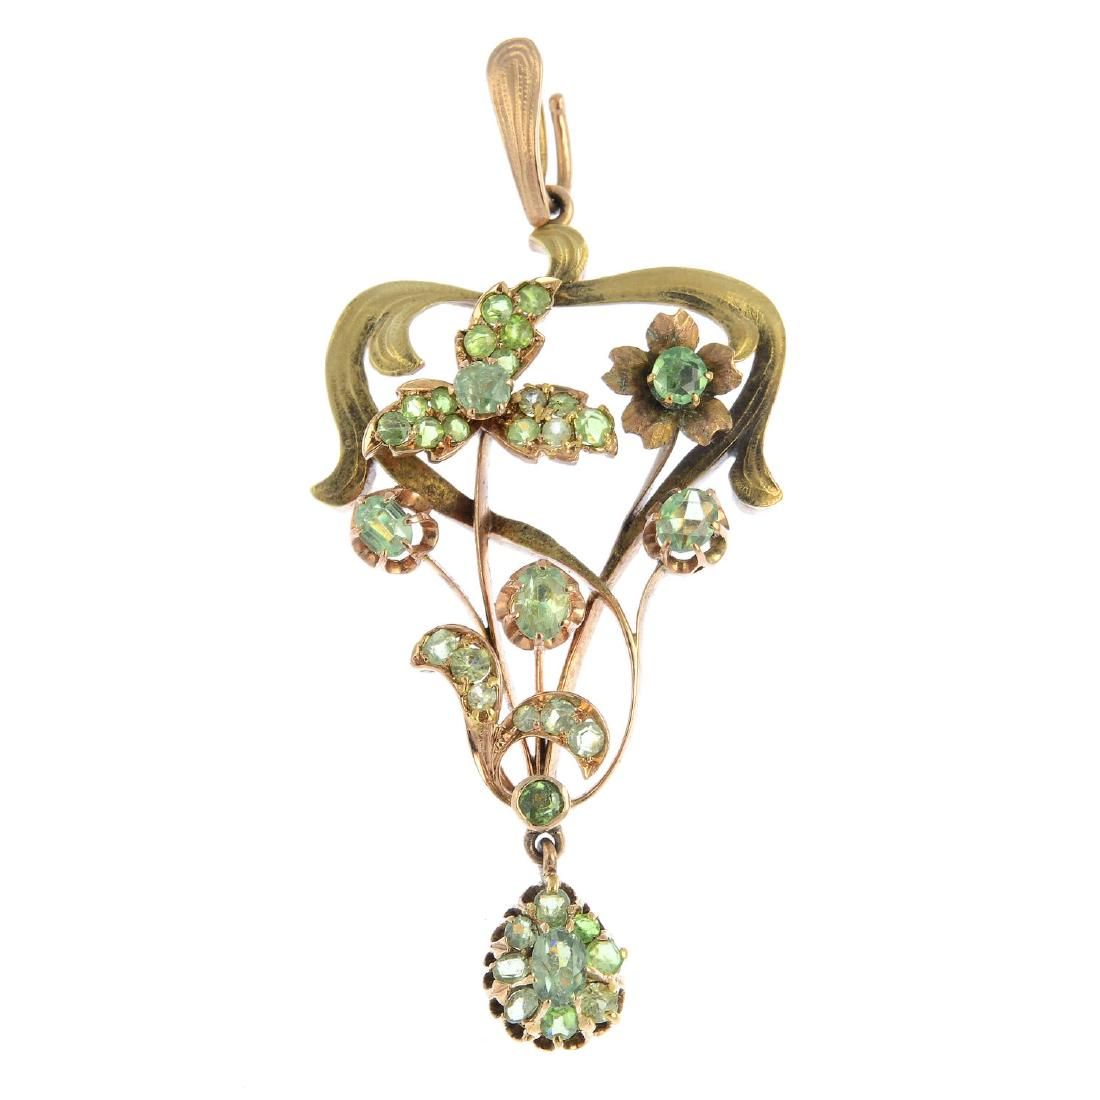 An early 20th century gold demantoid garnet pendant.